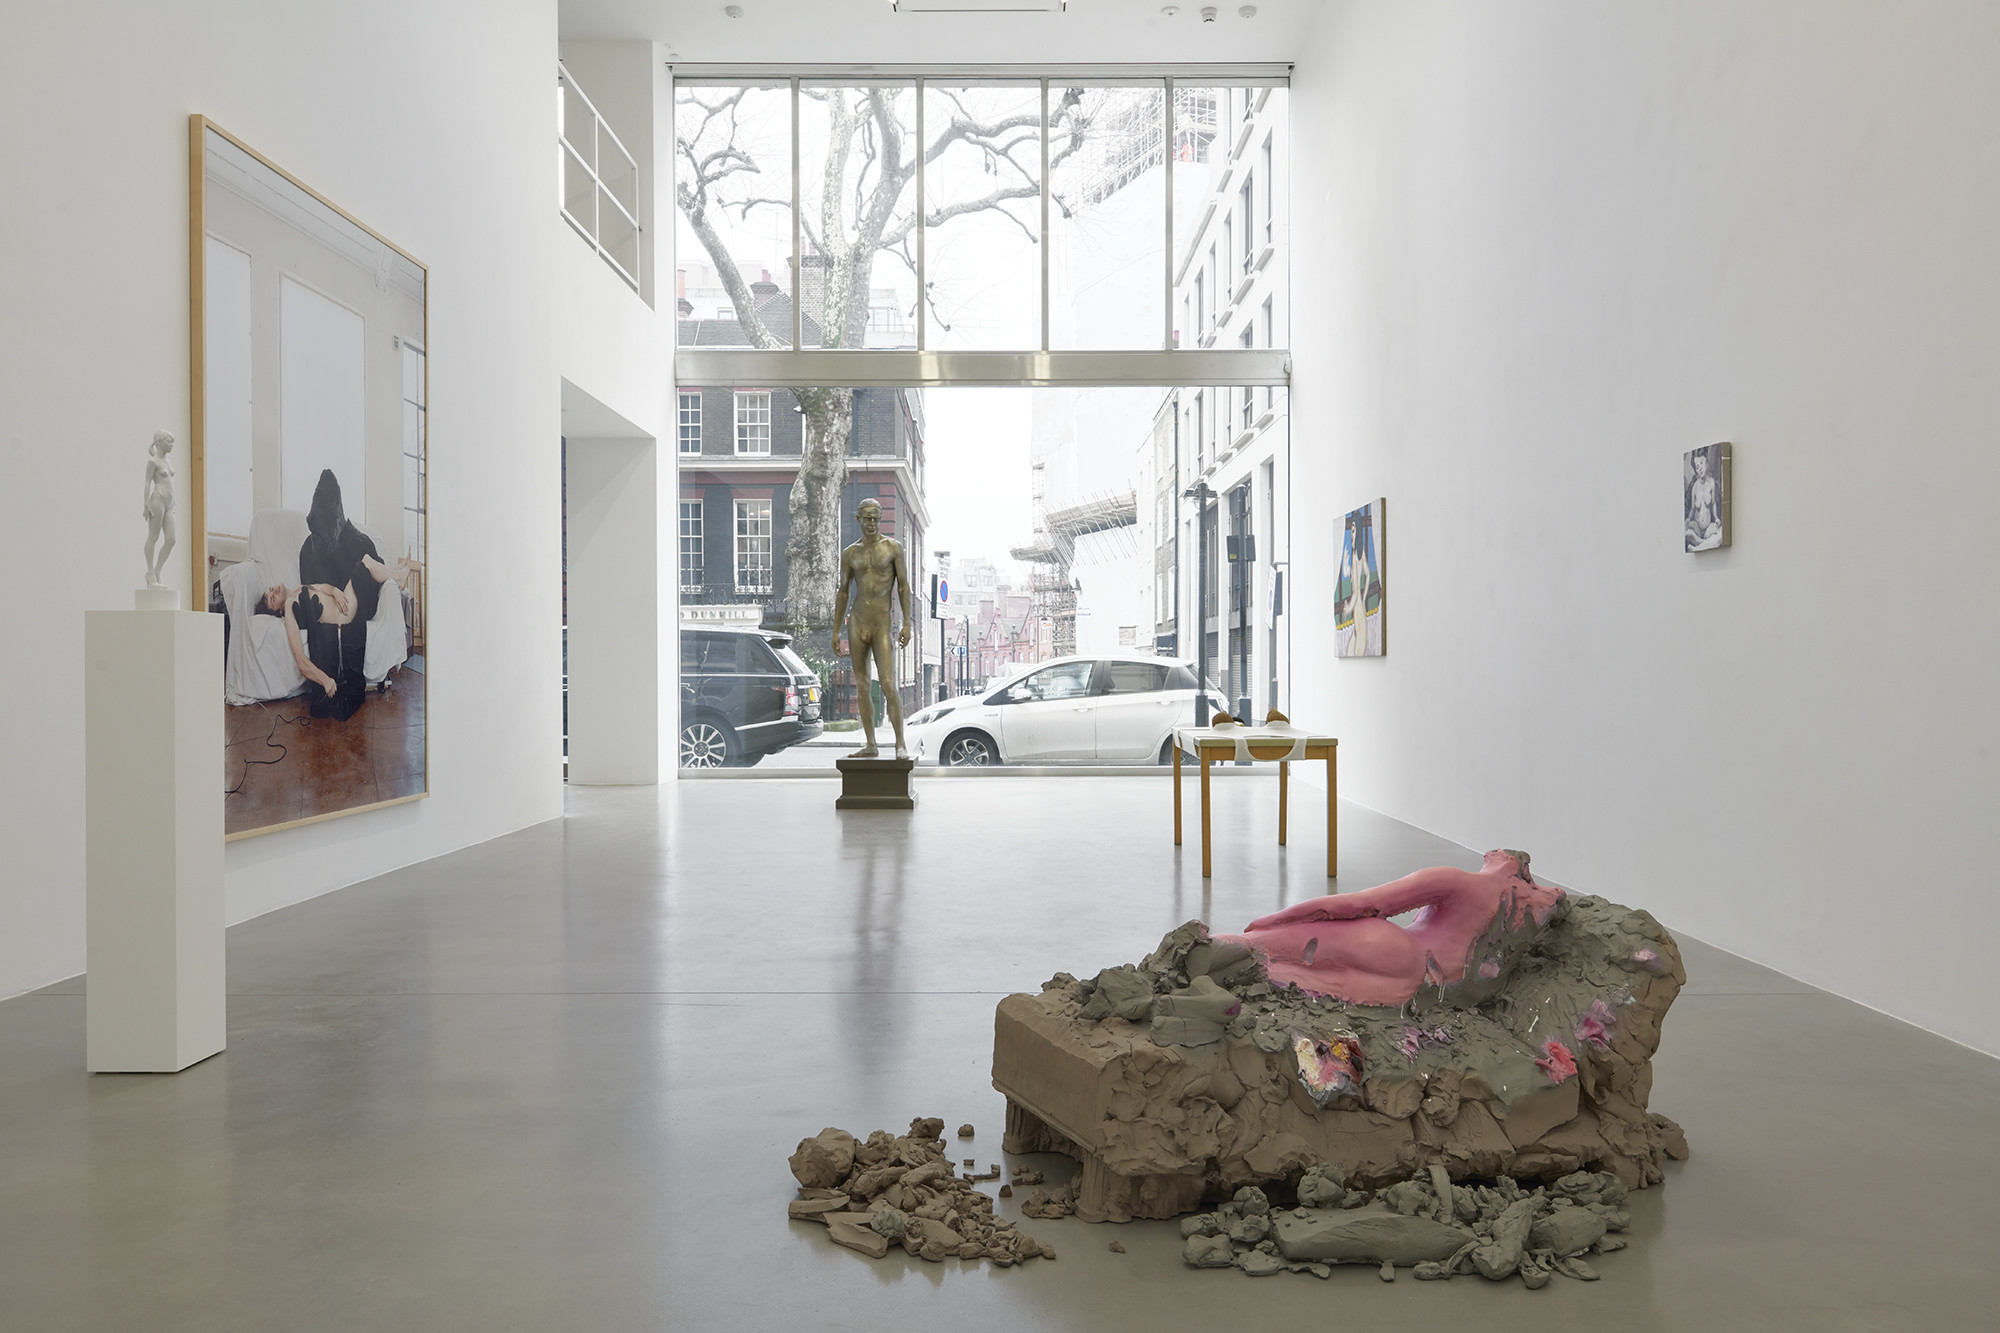 <p>Installation View, 2018</p>